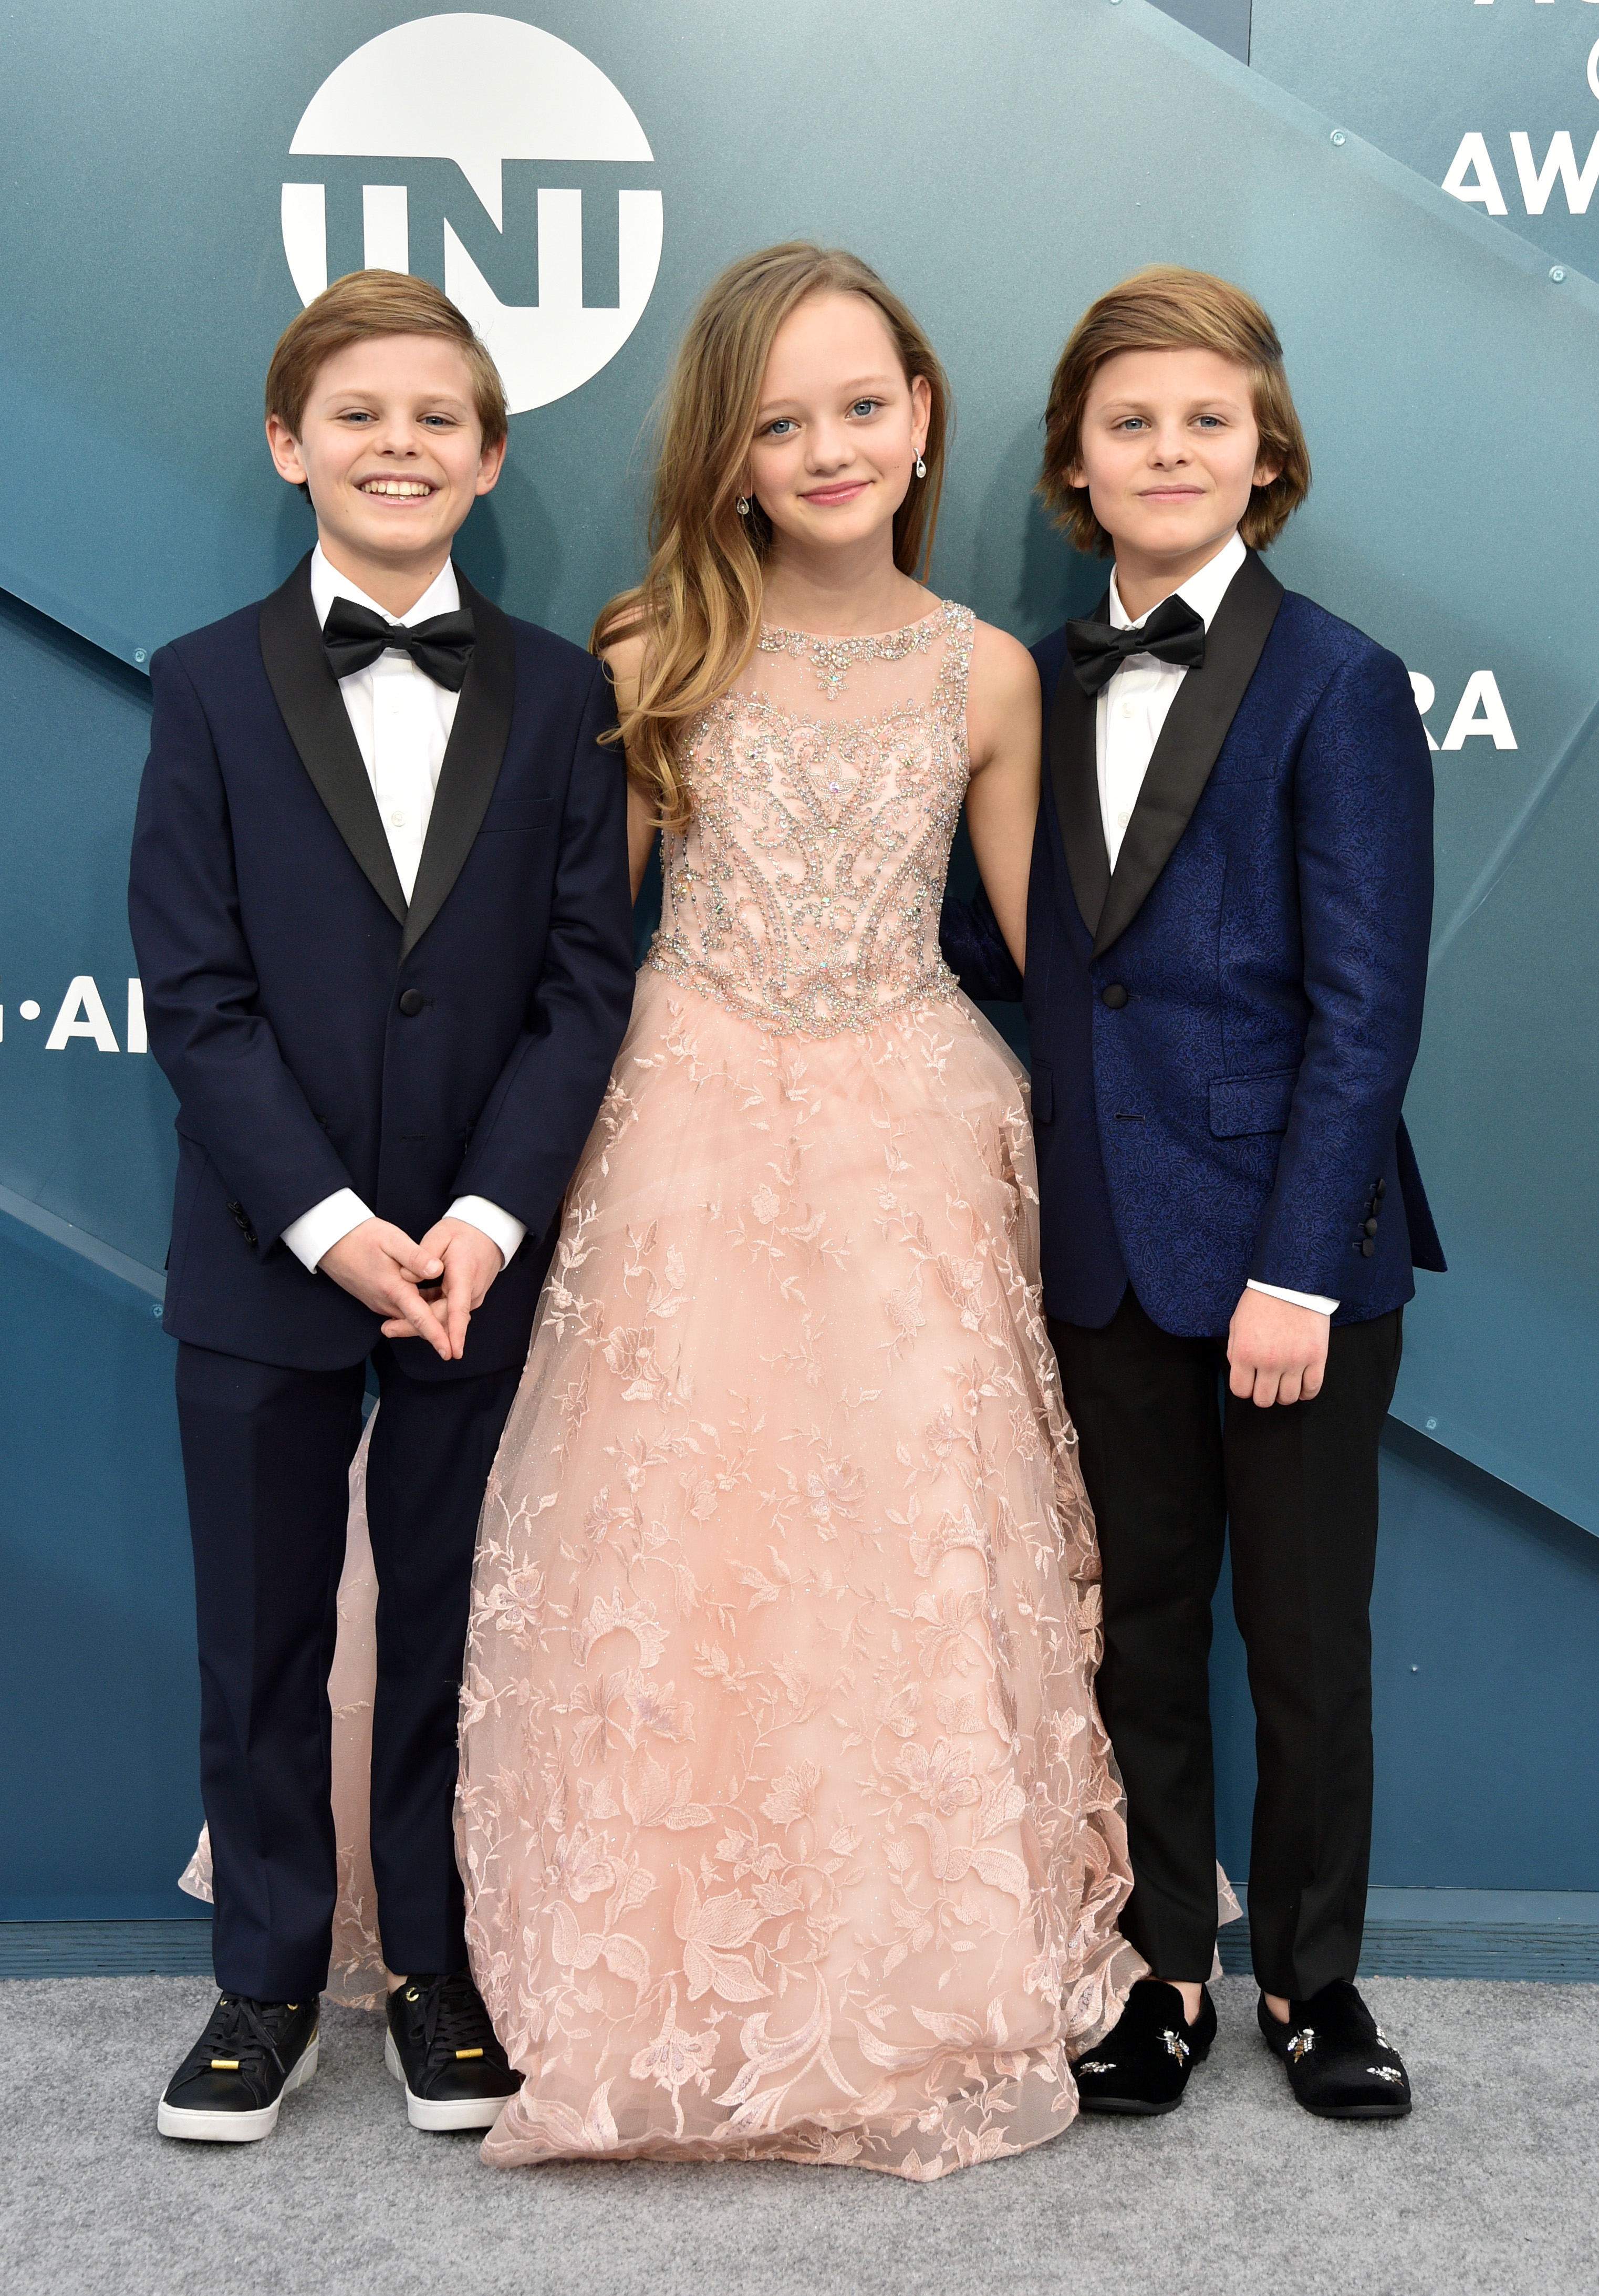 LOS ANGELES, CALIFORNIA - JANUARY 19: (L-R) Nicholas Crovetti, Ivy George, and Cameron Crovetti attend the 26th Annual Screen ActorsGuild Awards at The Shrine Auditorium on January 19, 2020 in Los Angeles, California. 721430 (Photo by Gregg DeGuire/Getty Images for Turner)